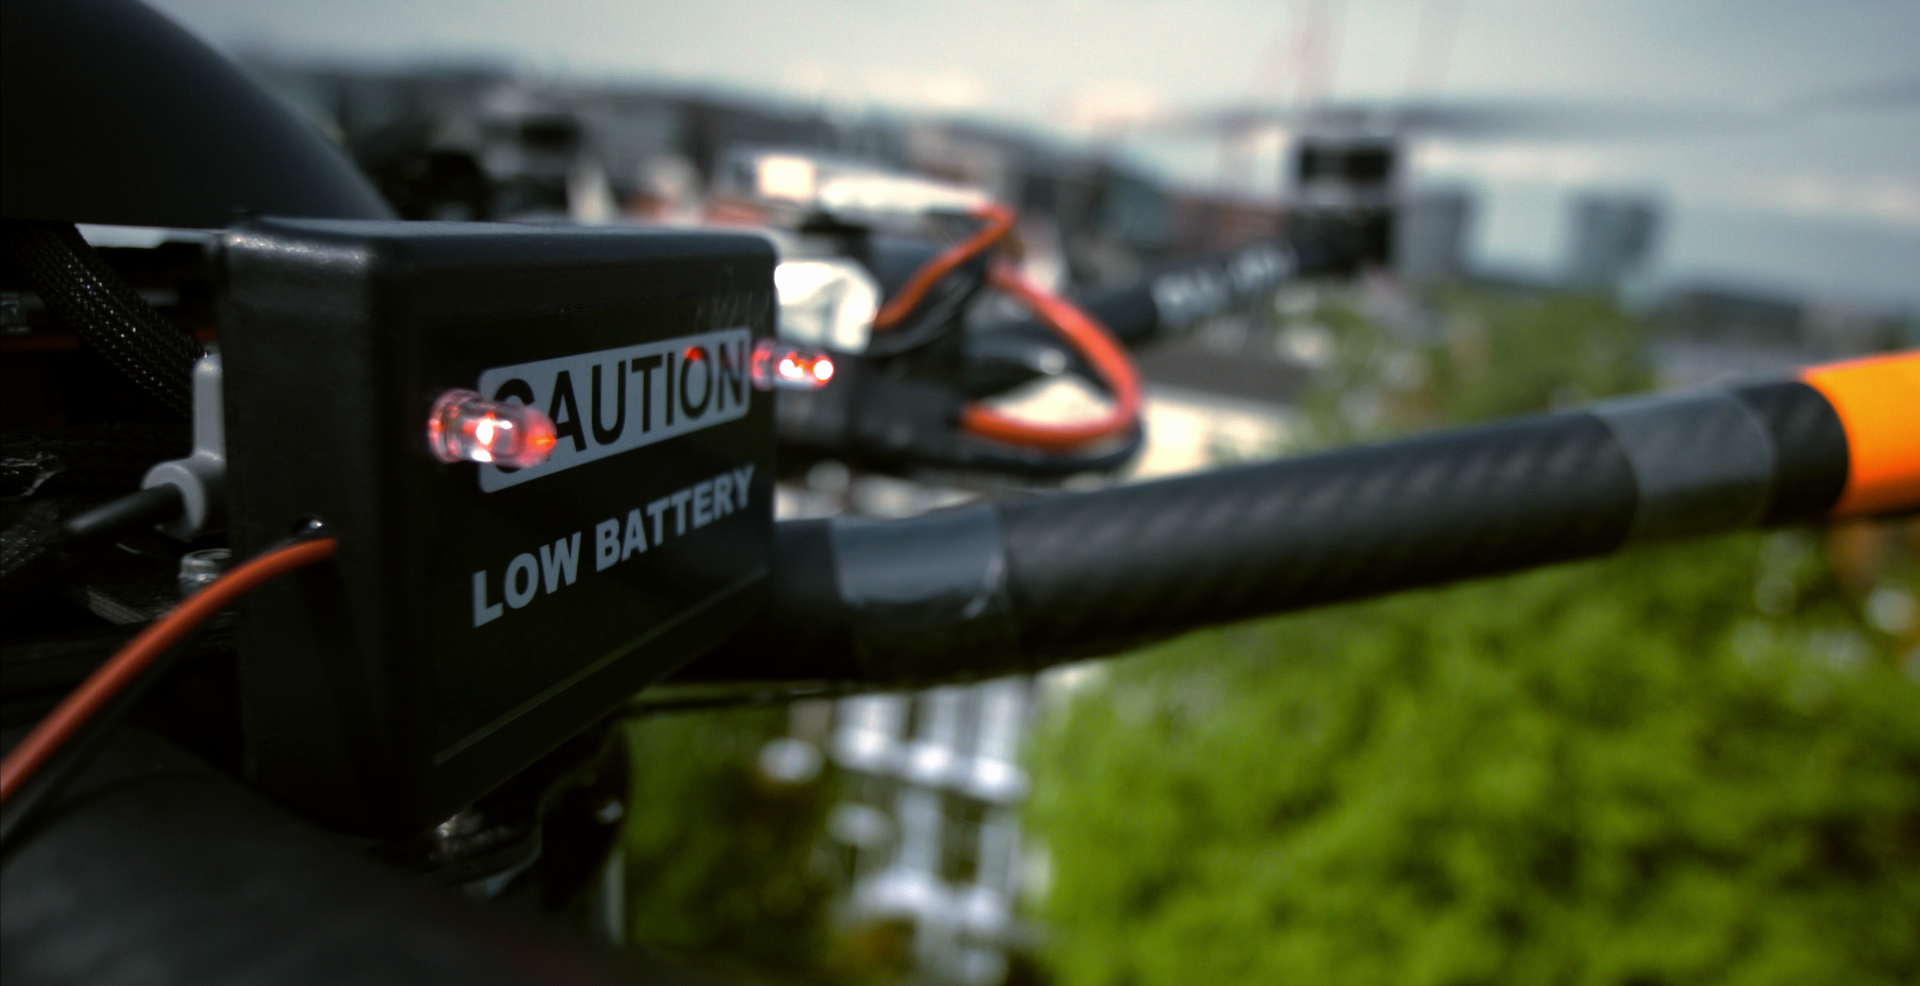 Still from the promo video Hilton Haring Party. A close up shot of the battery pack blinking red, saying 'caution: low battery'.